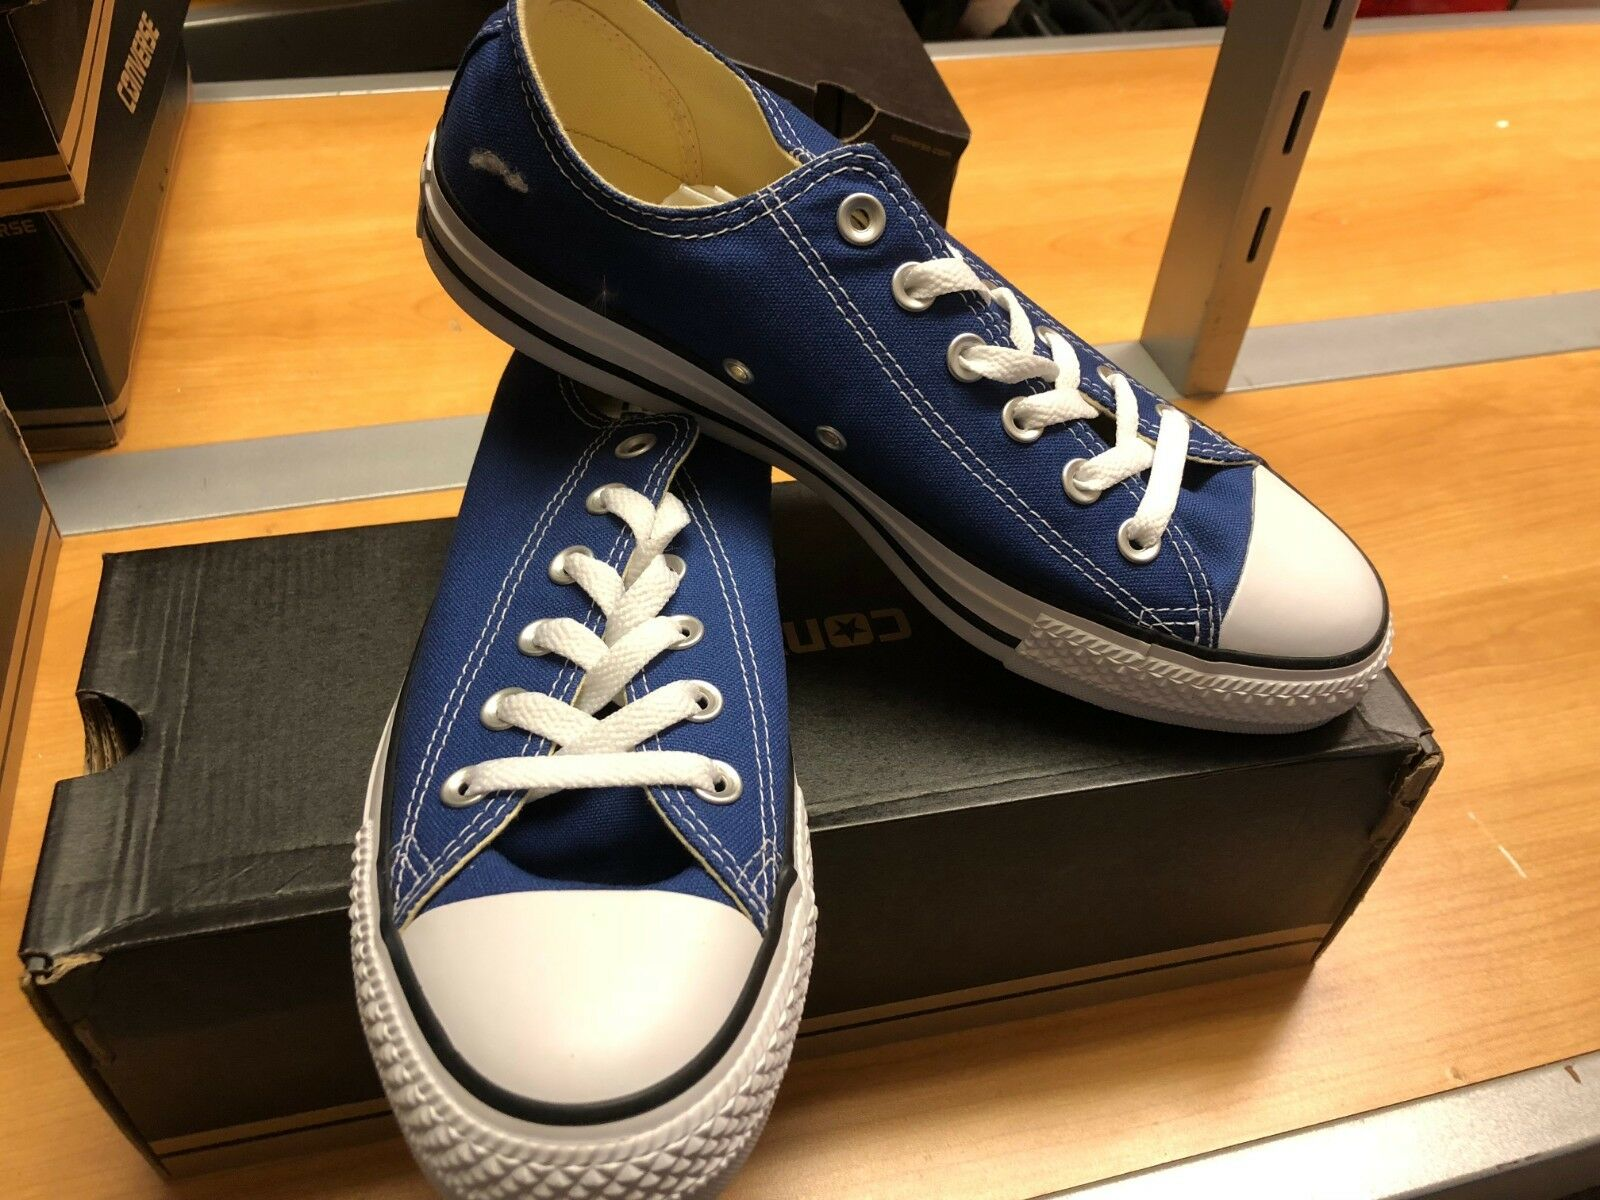 Converse Chuck Taylor ALL STAR Low Top Roadtrip blue  Brand New in Original Box